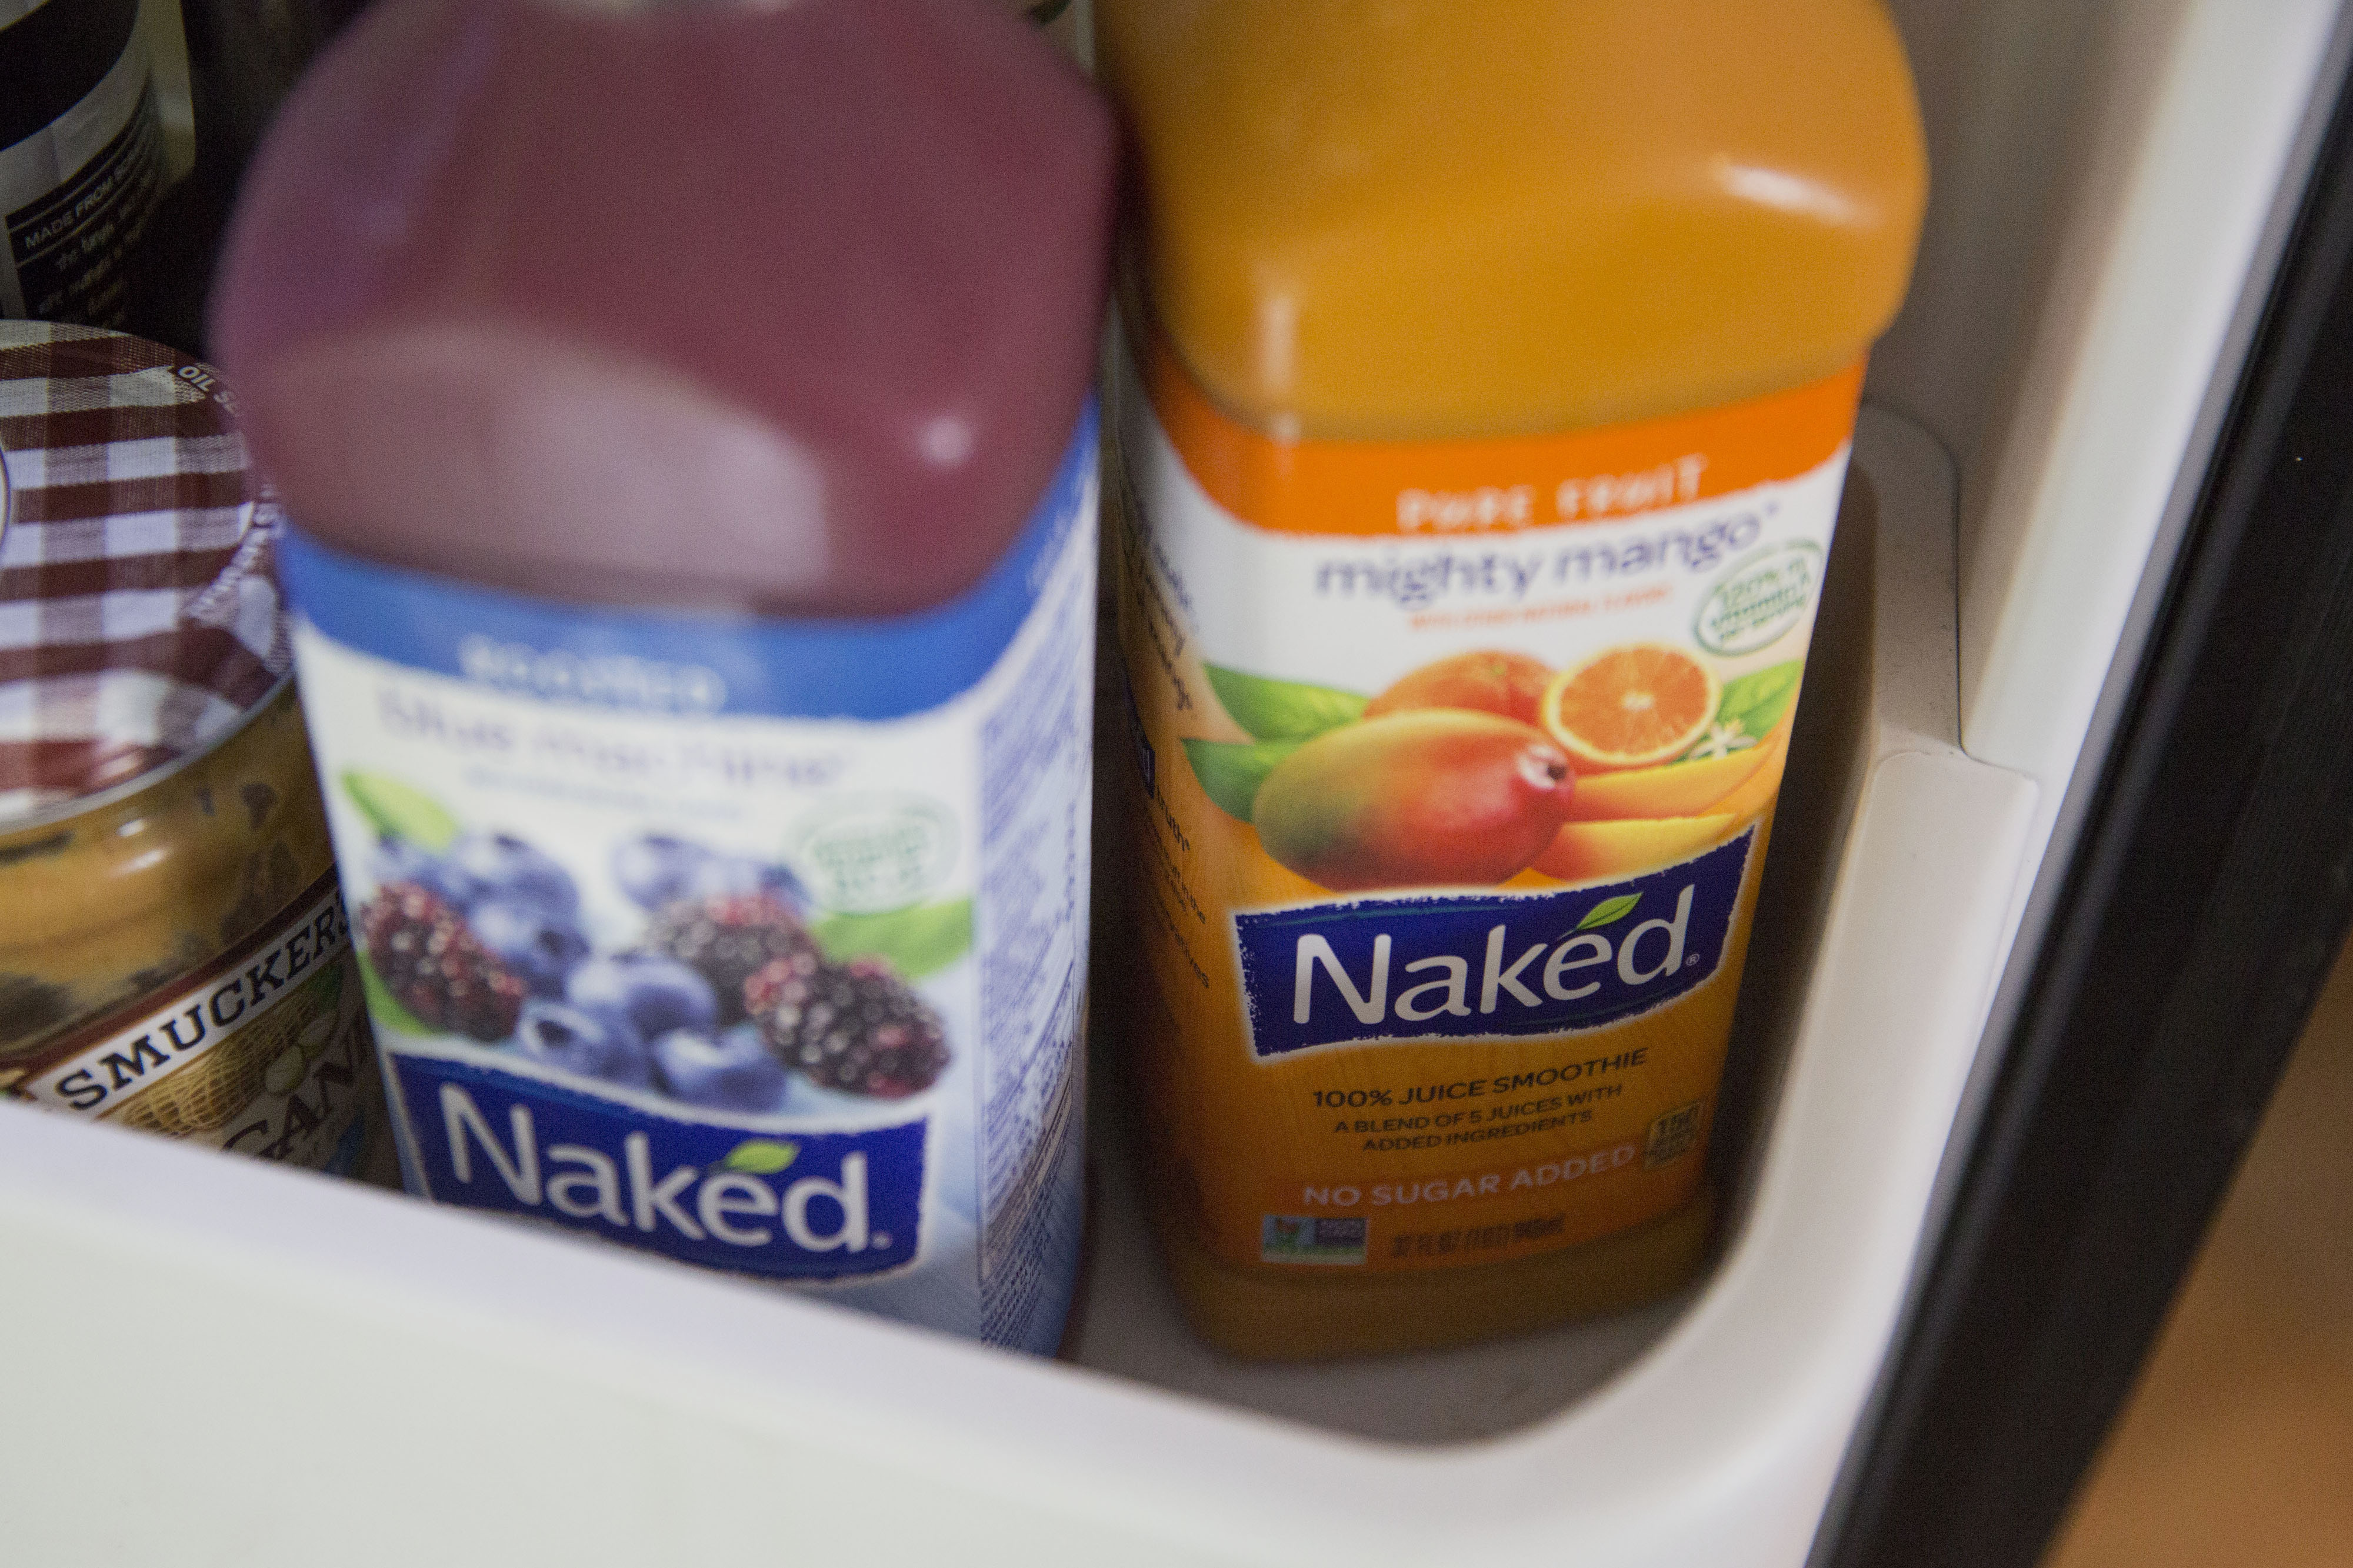 Naked Juice Lawsuit: PepsiCo Agrees to Change Labels | Fortune